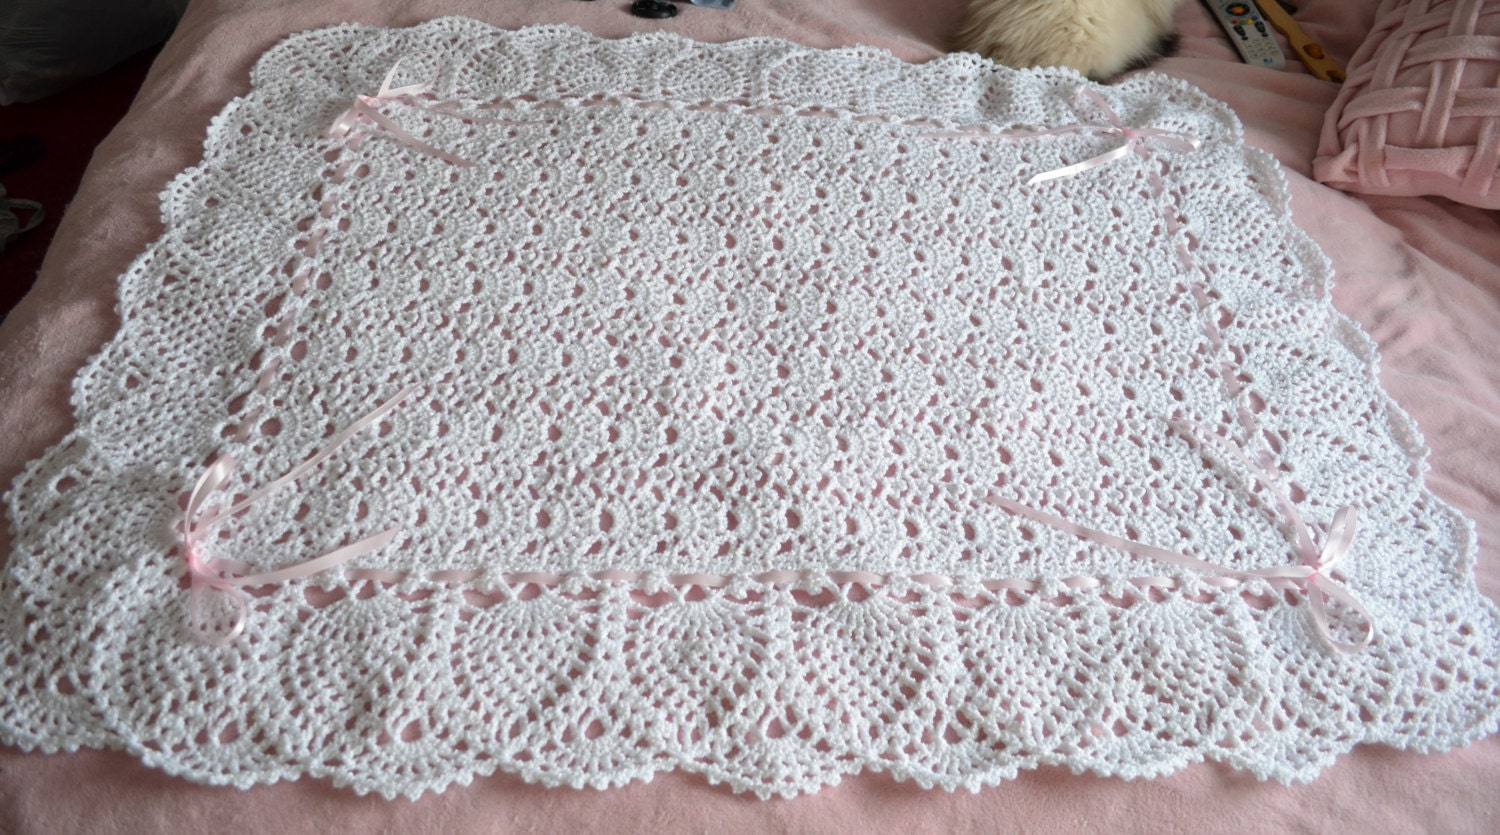 Free Knitting Patterns For Baby Christening Blankets : White Lace Crocheted Baby Blanket Afghan Perfect for the